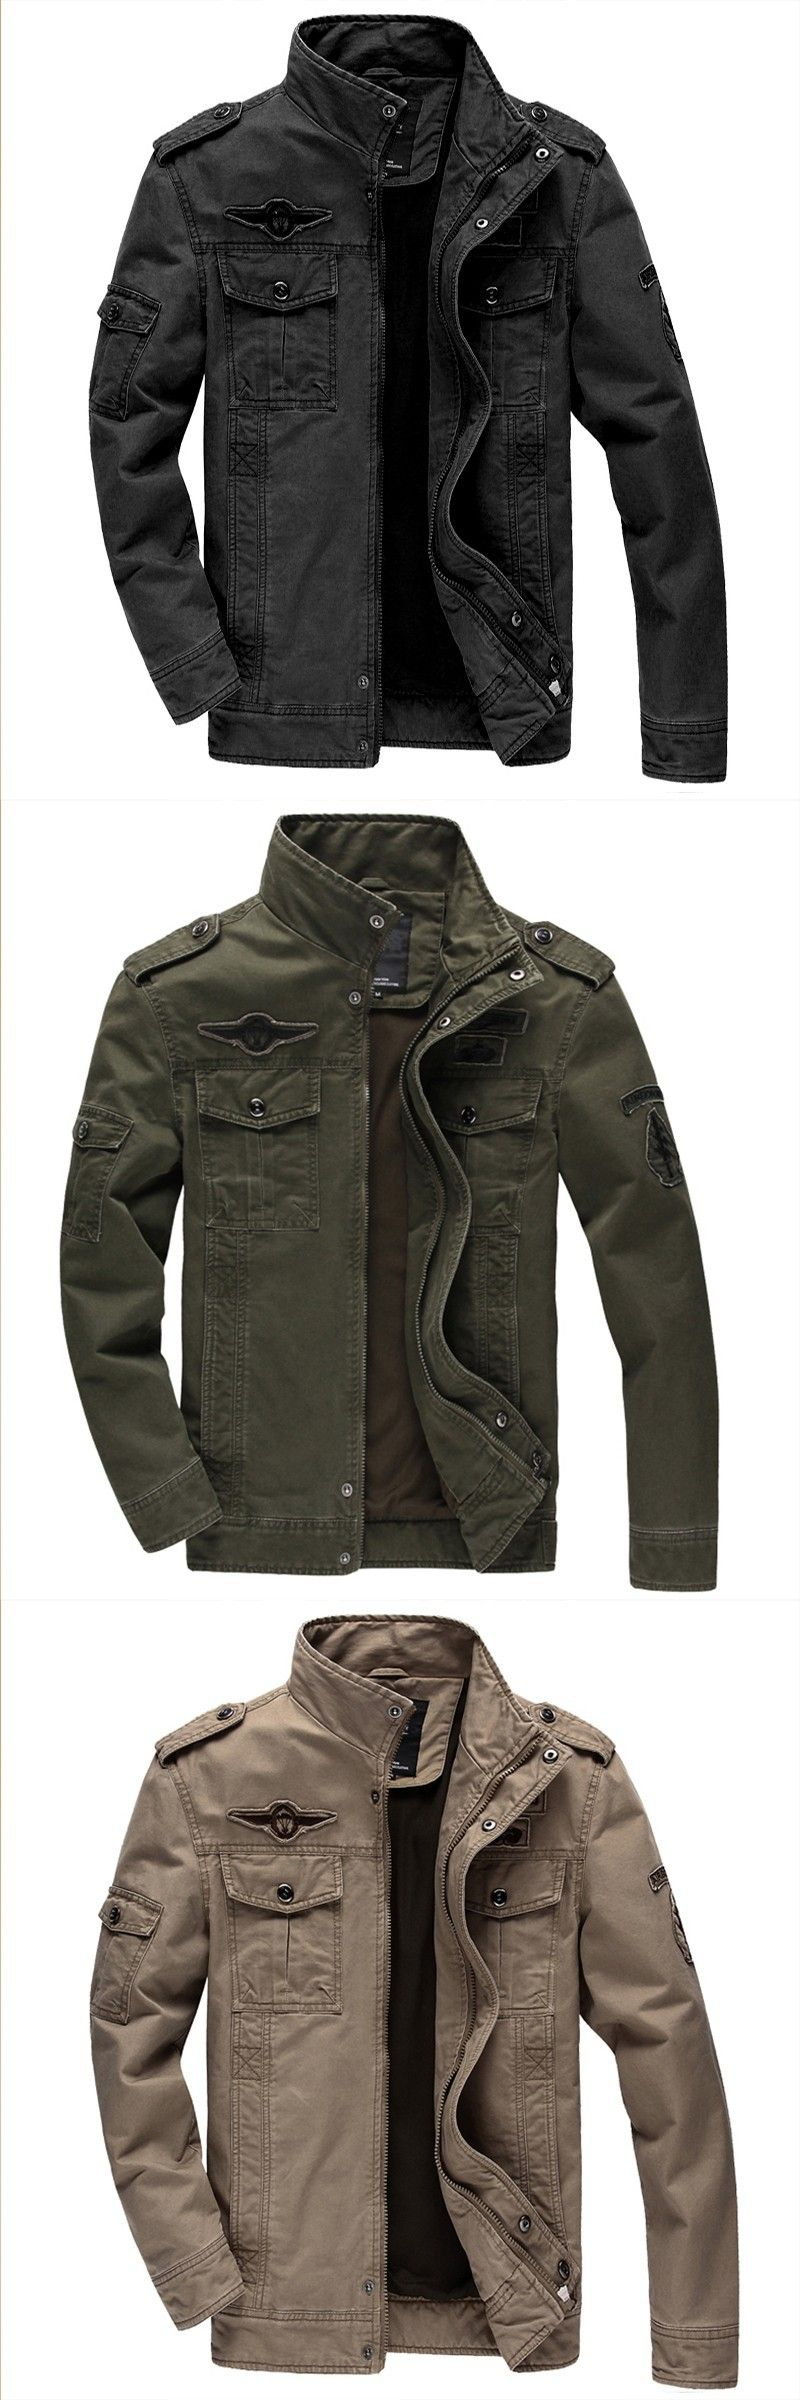 Best Jacket Brand Jacking Man Winter Jackets Men Coats Army Military High Quality Stand Collar Jacket M 6 Stand Collar Jackets Winter Jacket Men Collar Jackets [ 2400 x 800 Pixel ]